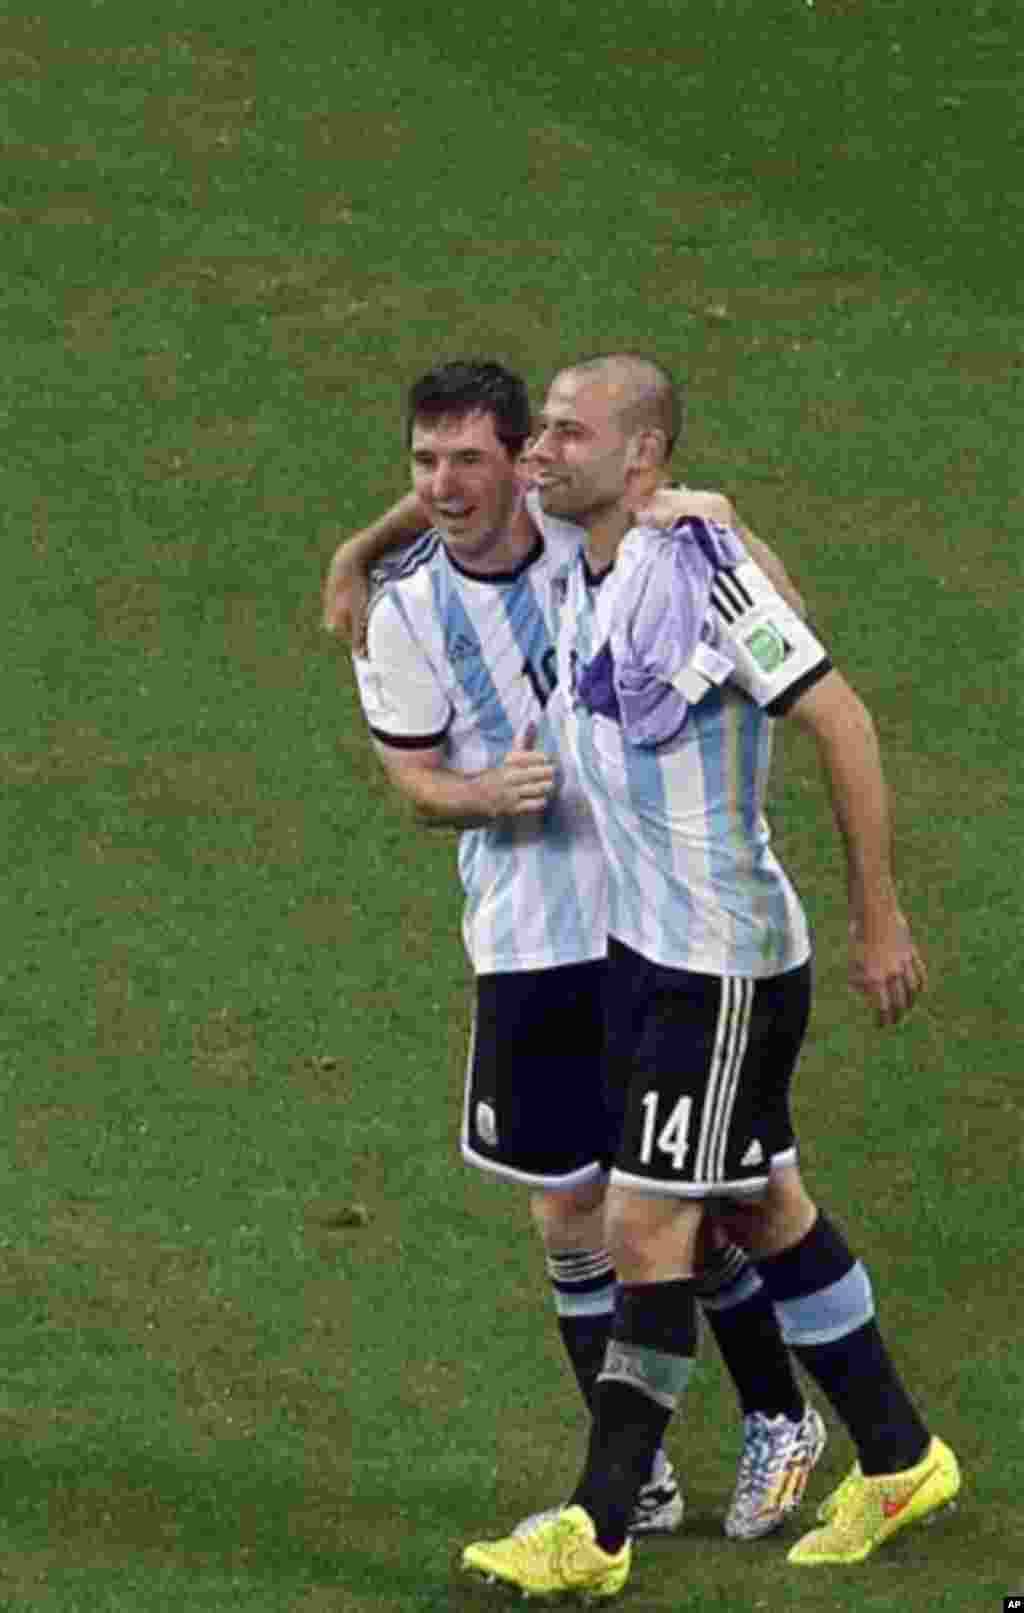 Argentina's Javier Mascherano and Lionel Messi celebrate after teammate Maxi Rodriguez scored the last penalty as Netherlands' players react at the end of the World Cup semifinal soccer match between the Netherlands and Argentina at the Itaquerao Stadium